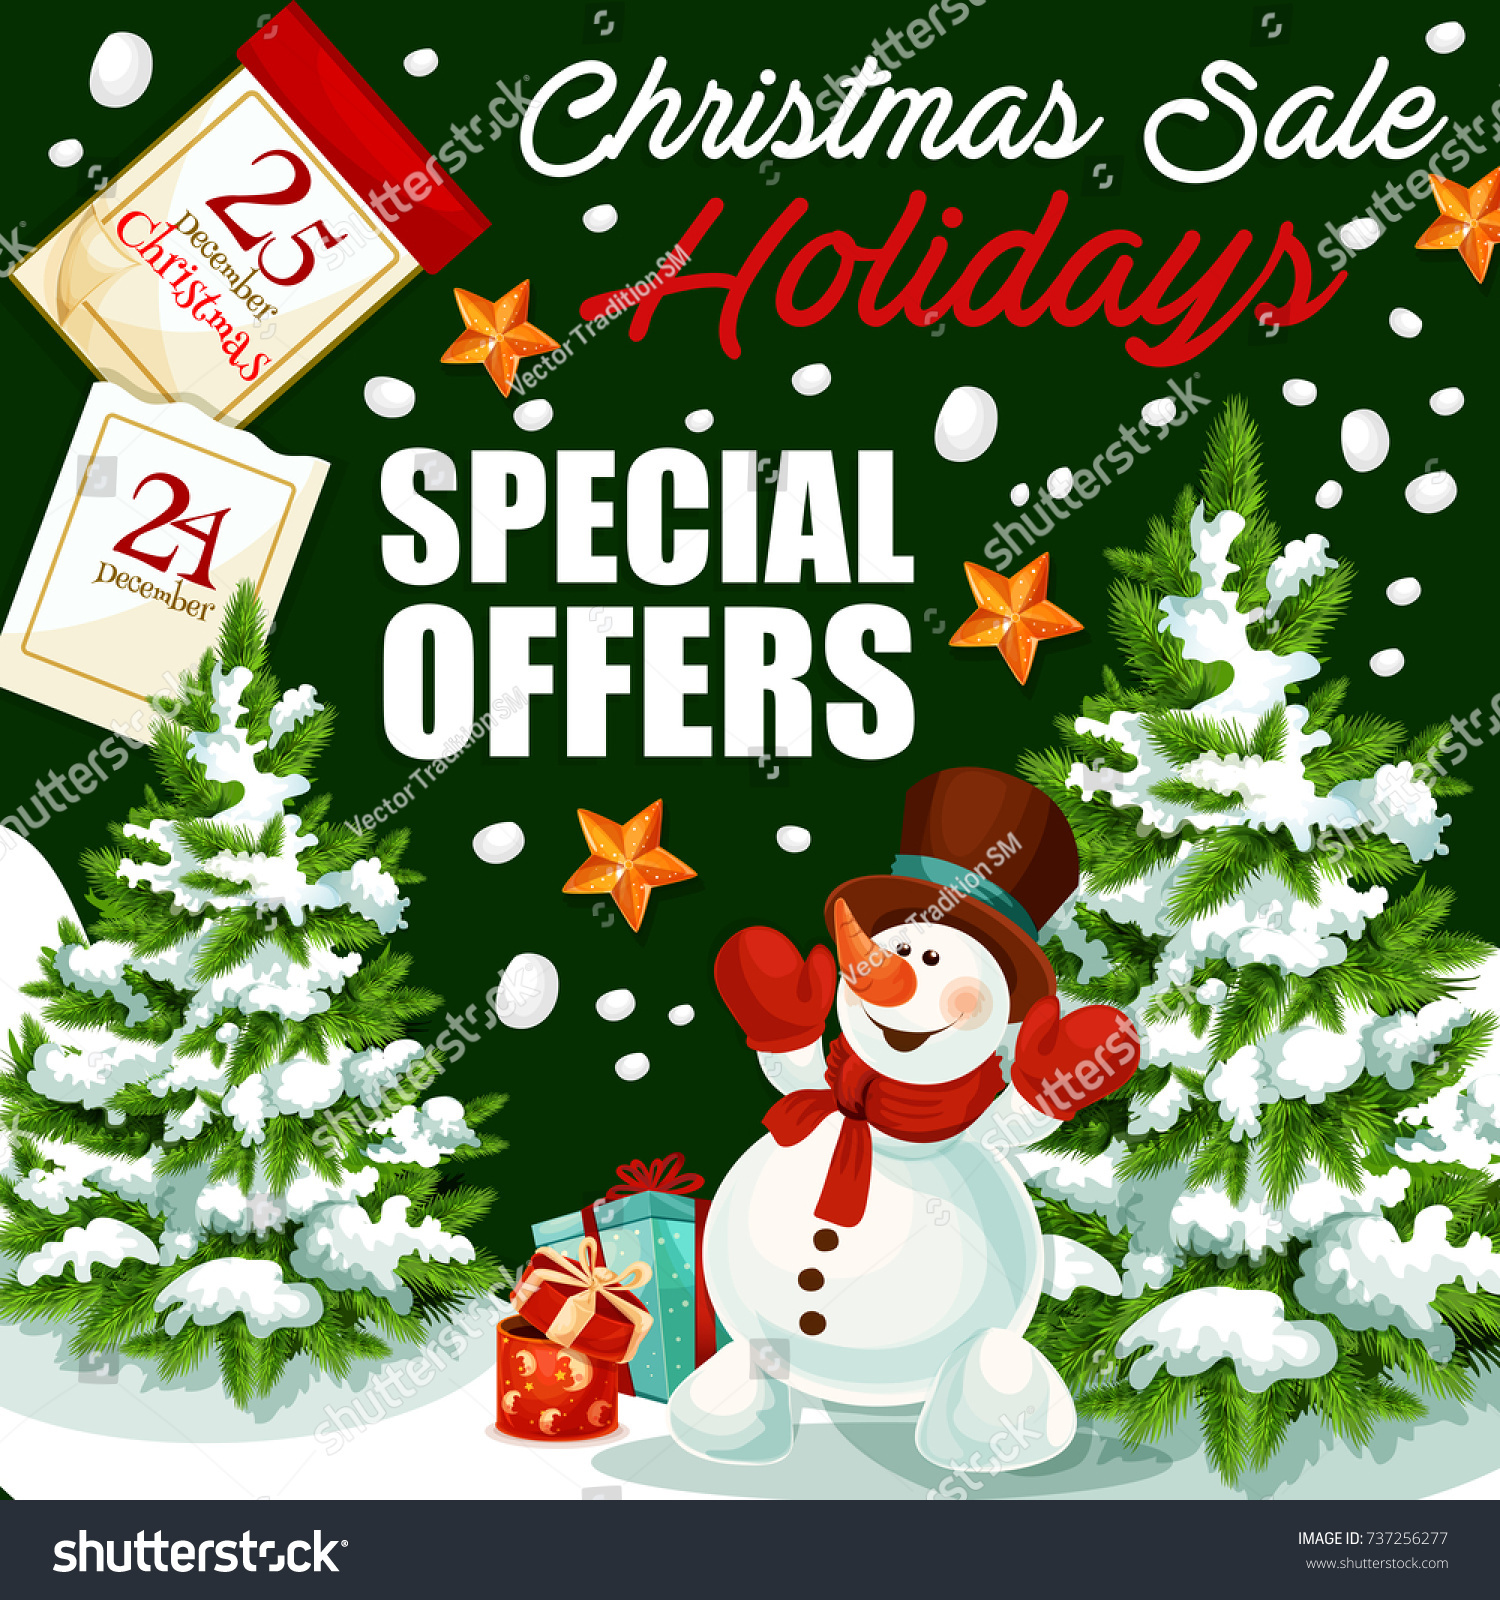 Christmas Holidays Sale Promo Poster Gifts Stock Vector (Royalty ...